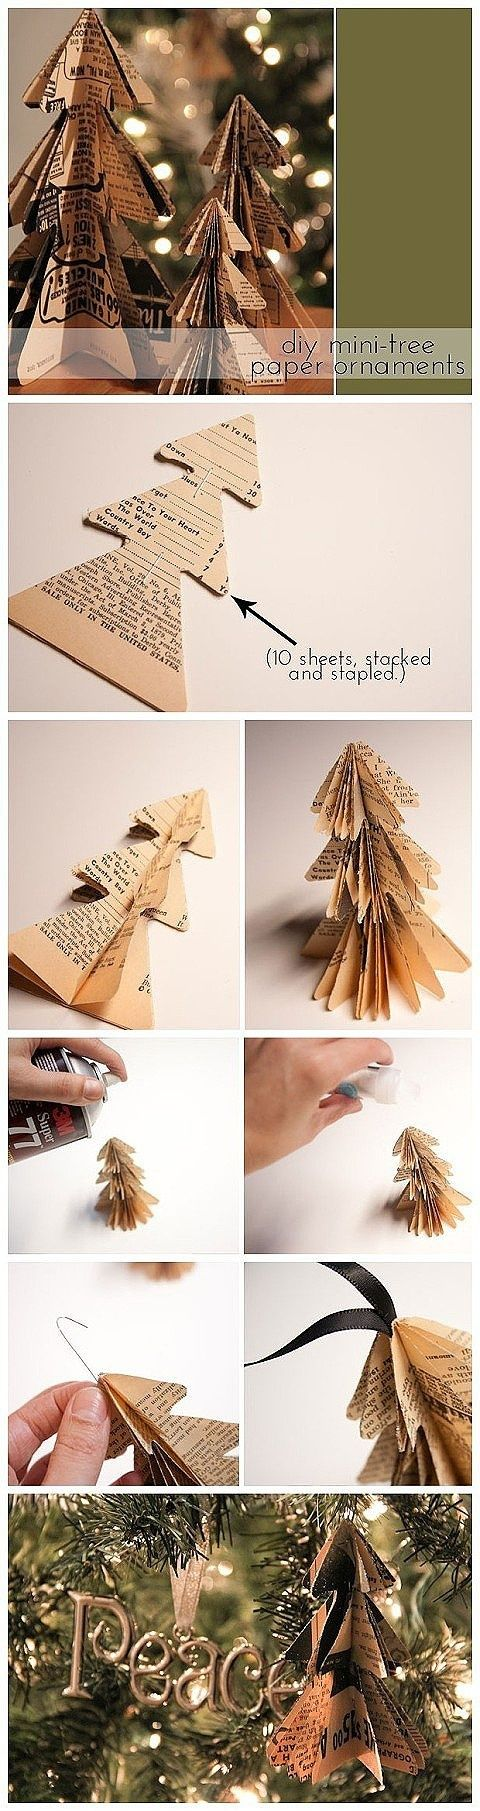 diy-christmas-decorations-014